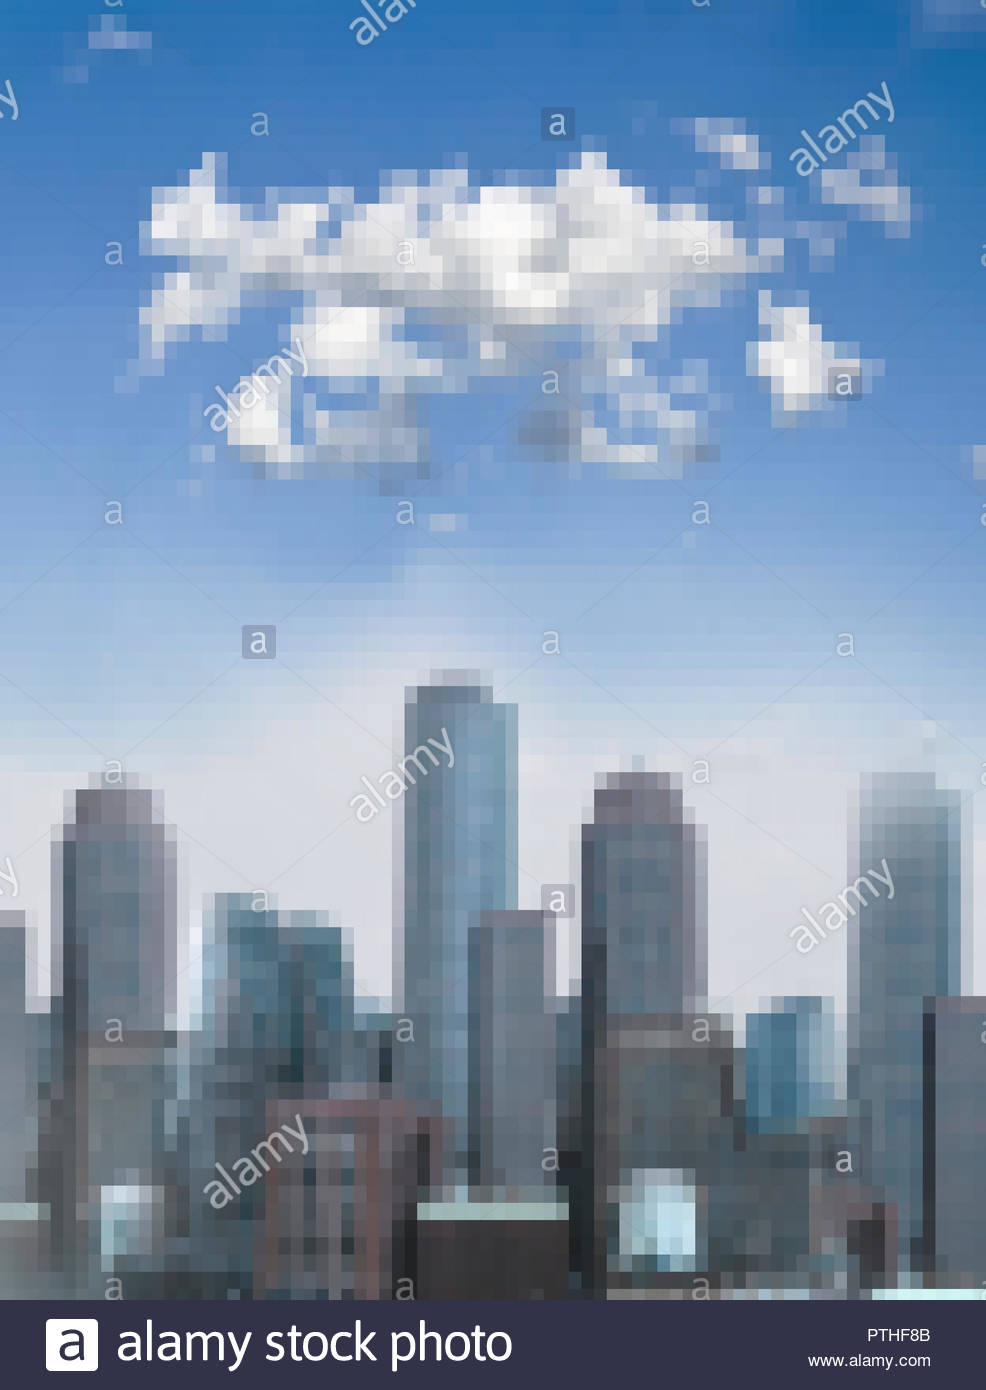 Pixellated cityscape on sunny day - Stock Image